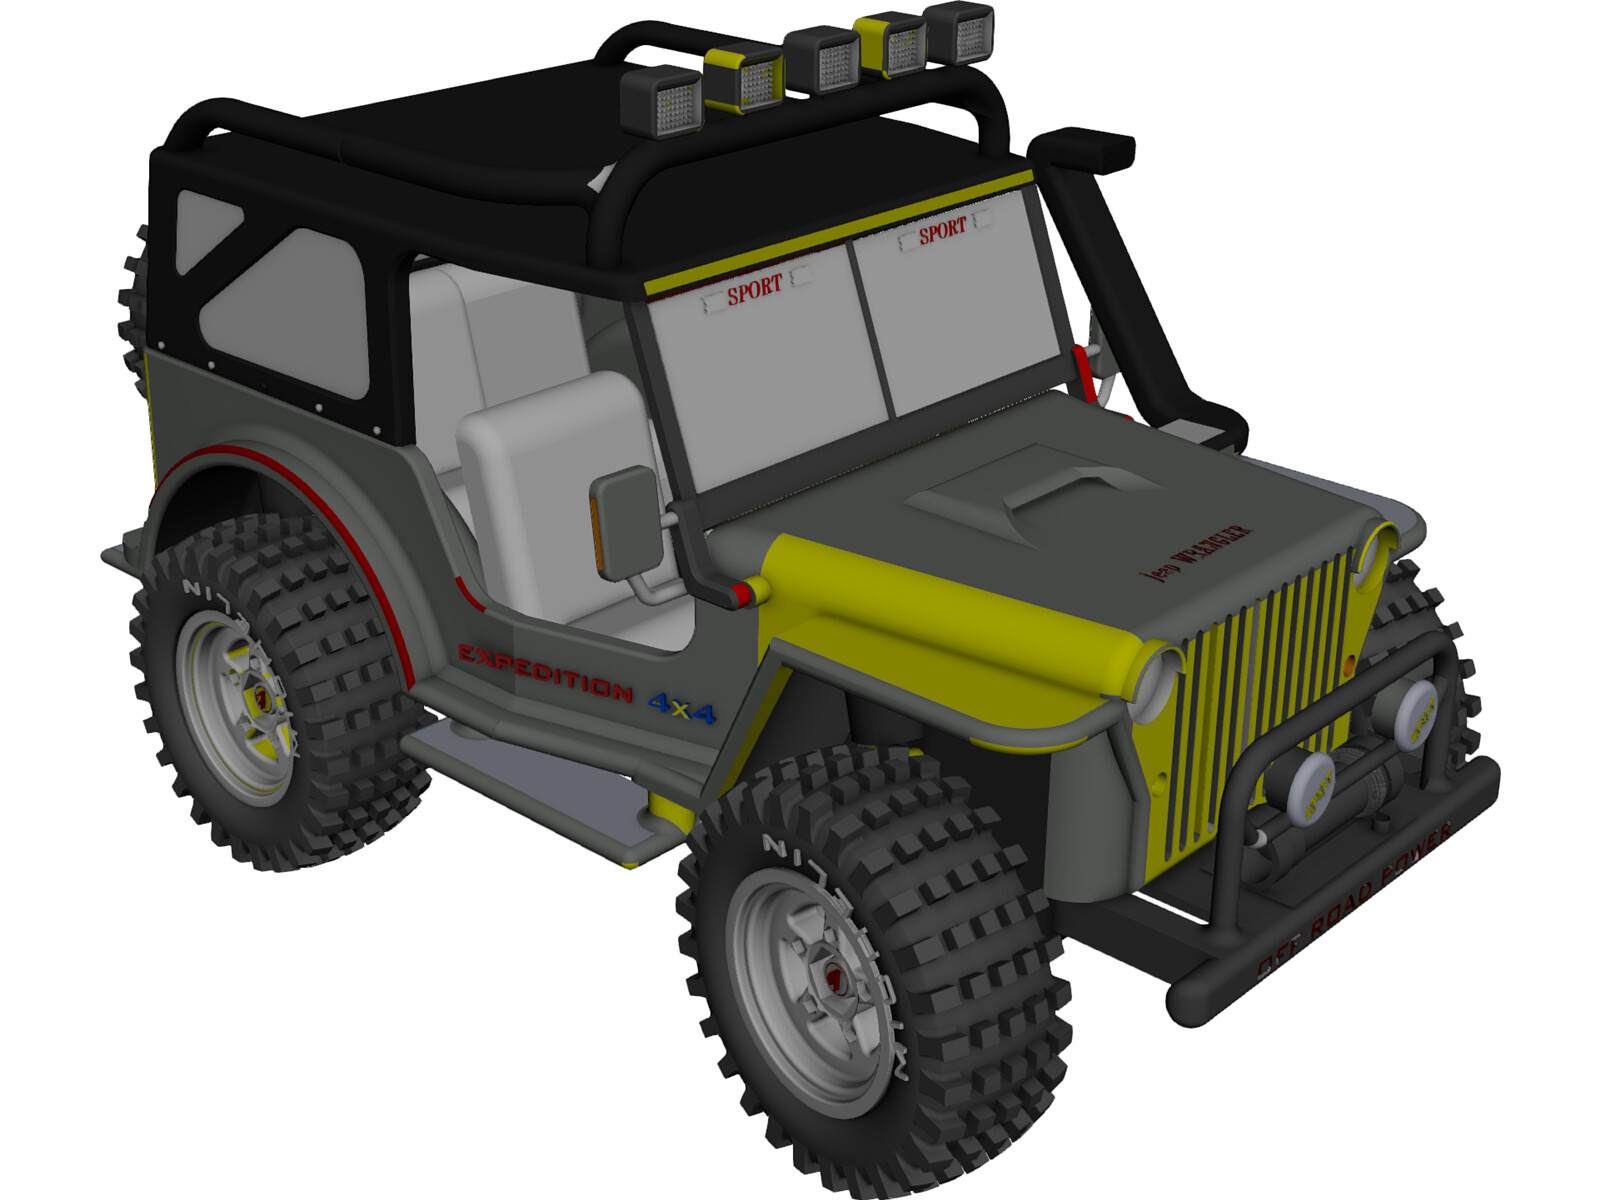 Jeep Wrangler 4x4 Expedition 3D CAD Model